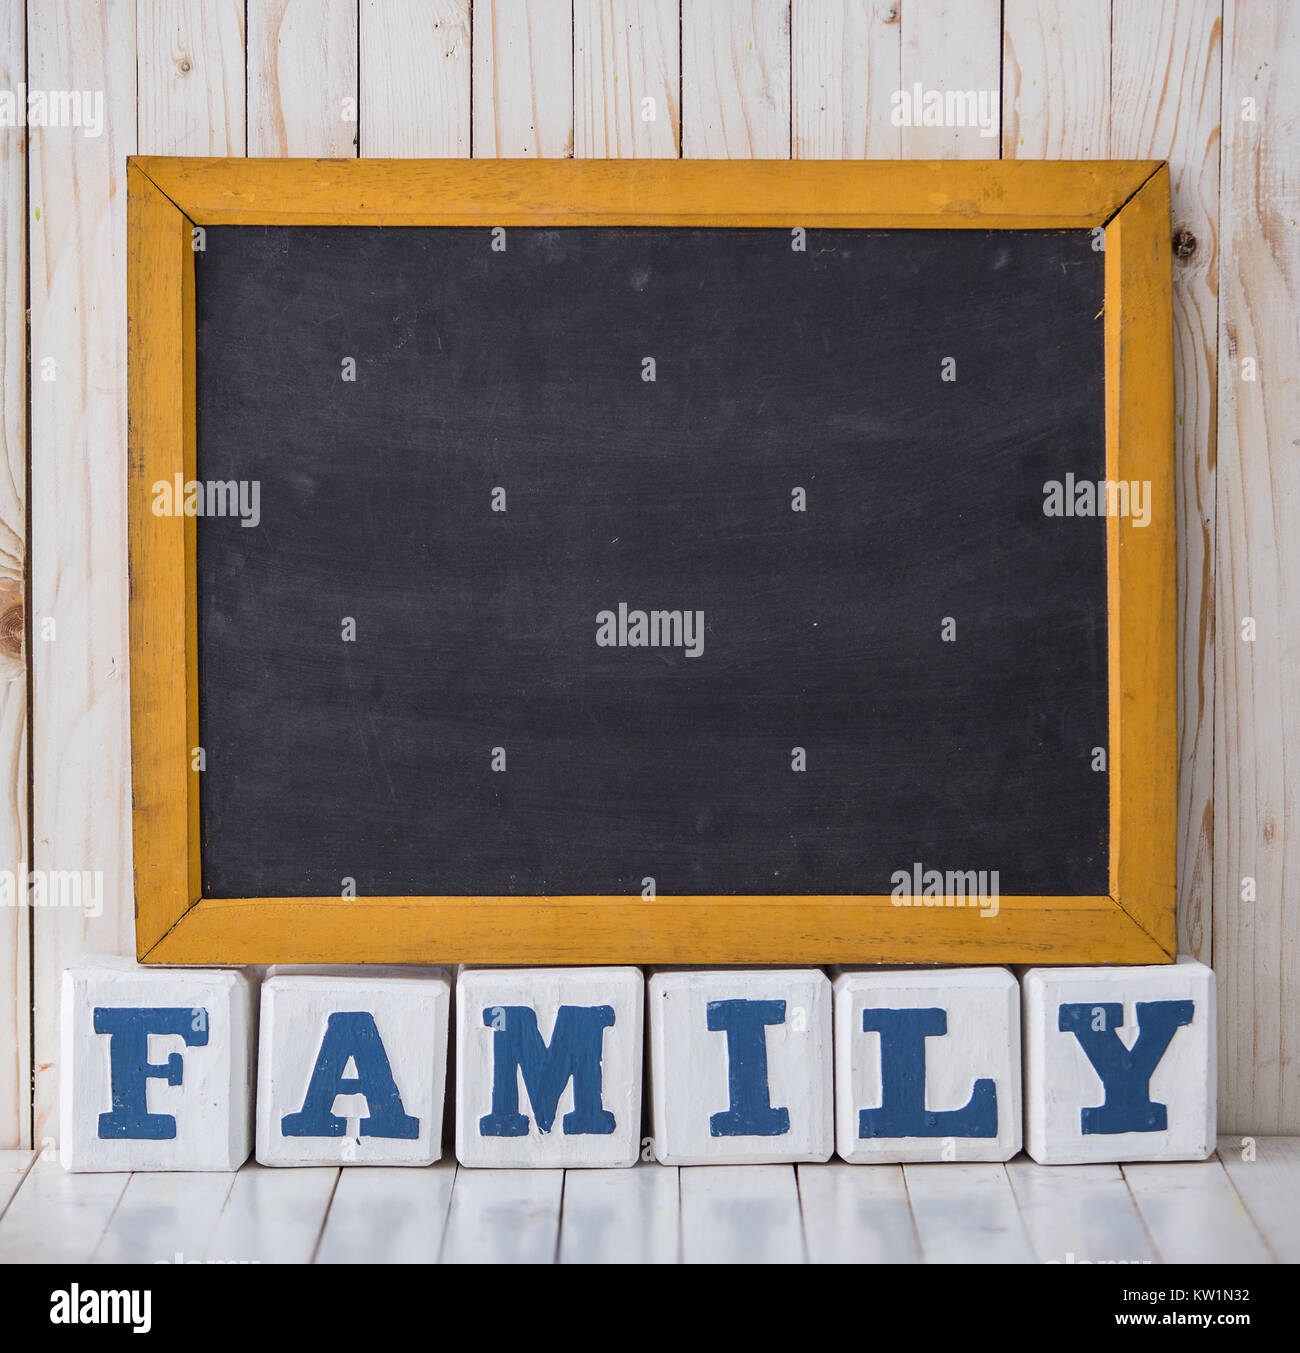 Chalkboard and FAMILY sign made of wooden blocks on wooden backg - Stock Image